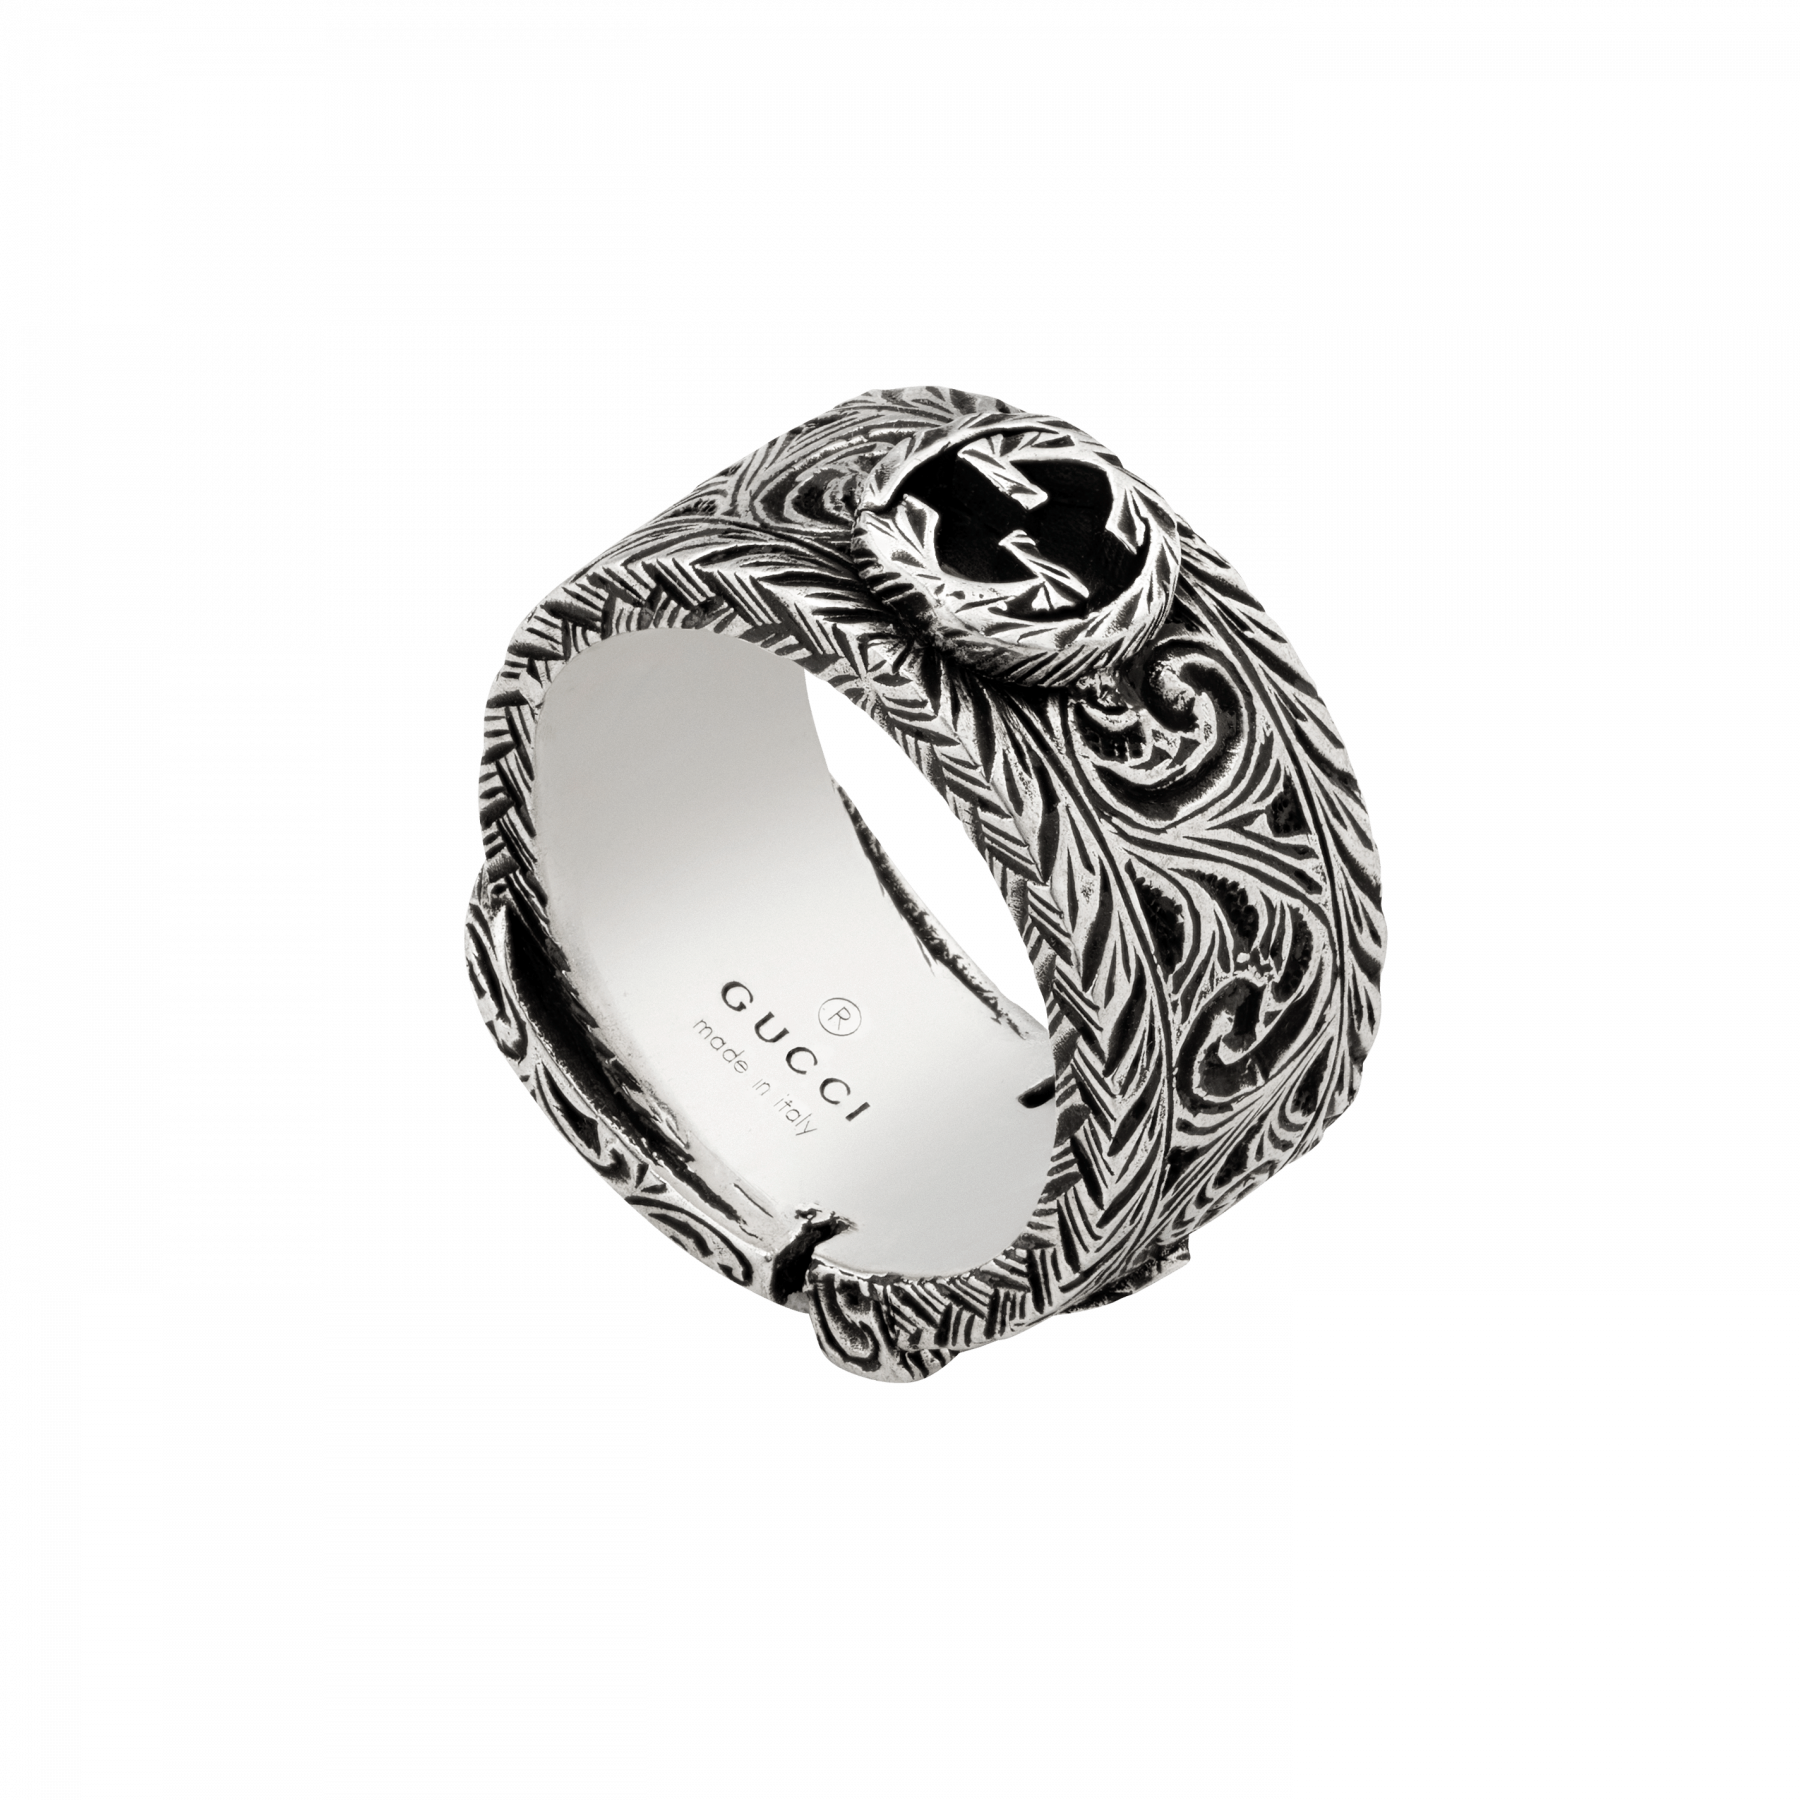 Gucci Garden Buckle Ring in Sterling Silver bottom view